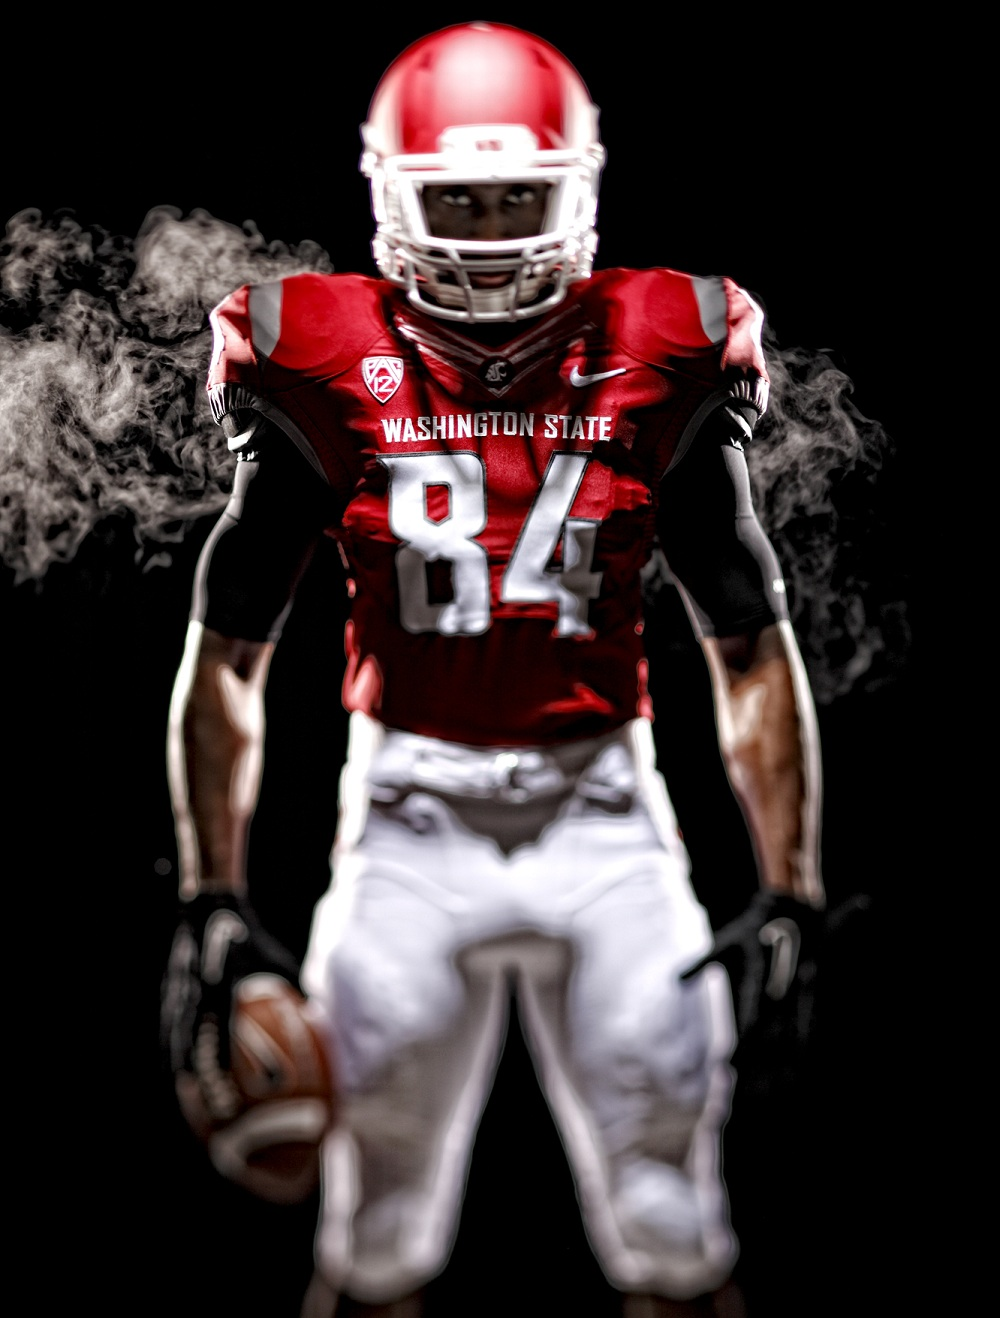 washington state football uniform home new washington state football. ← WSU Football Wallpaper